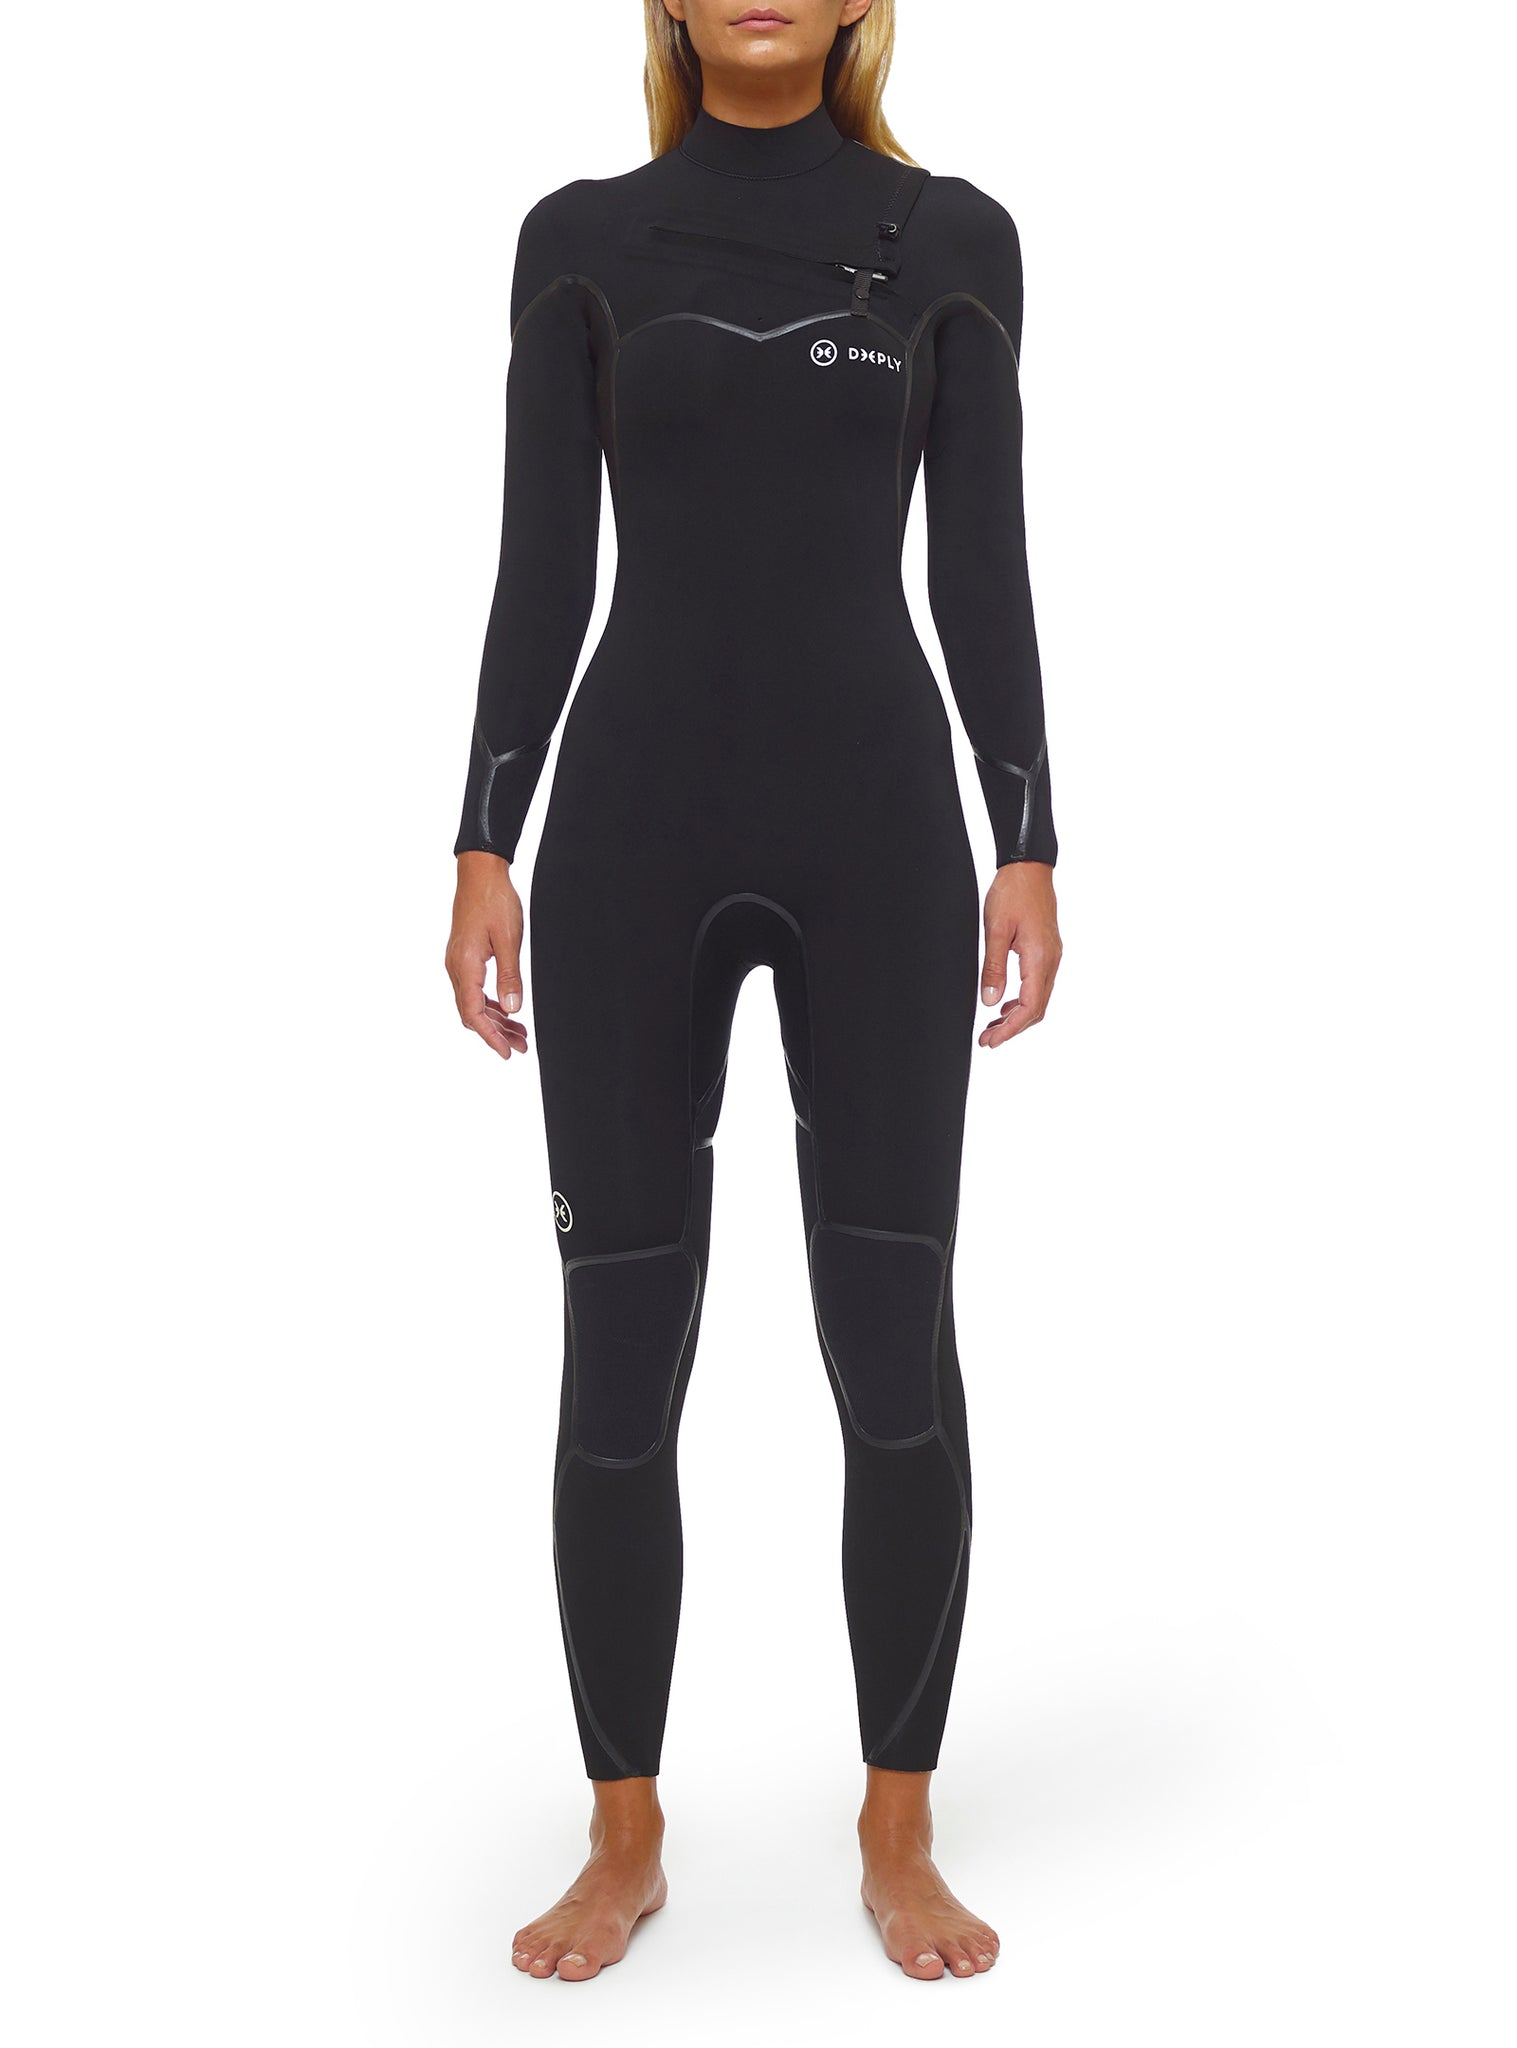 Wetsuit Woman Performance 5/3 Chest Zip Black